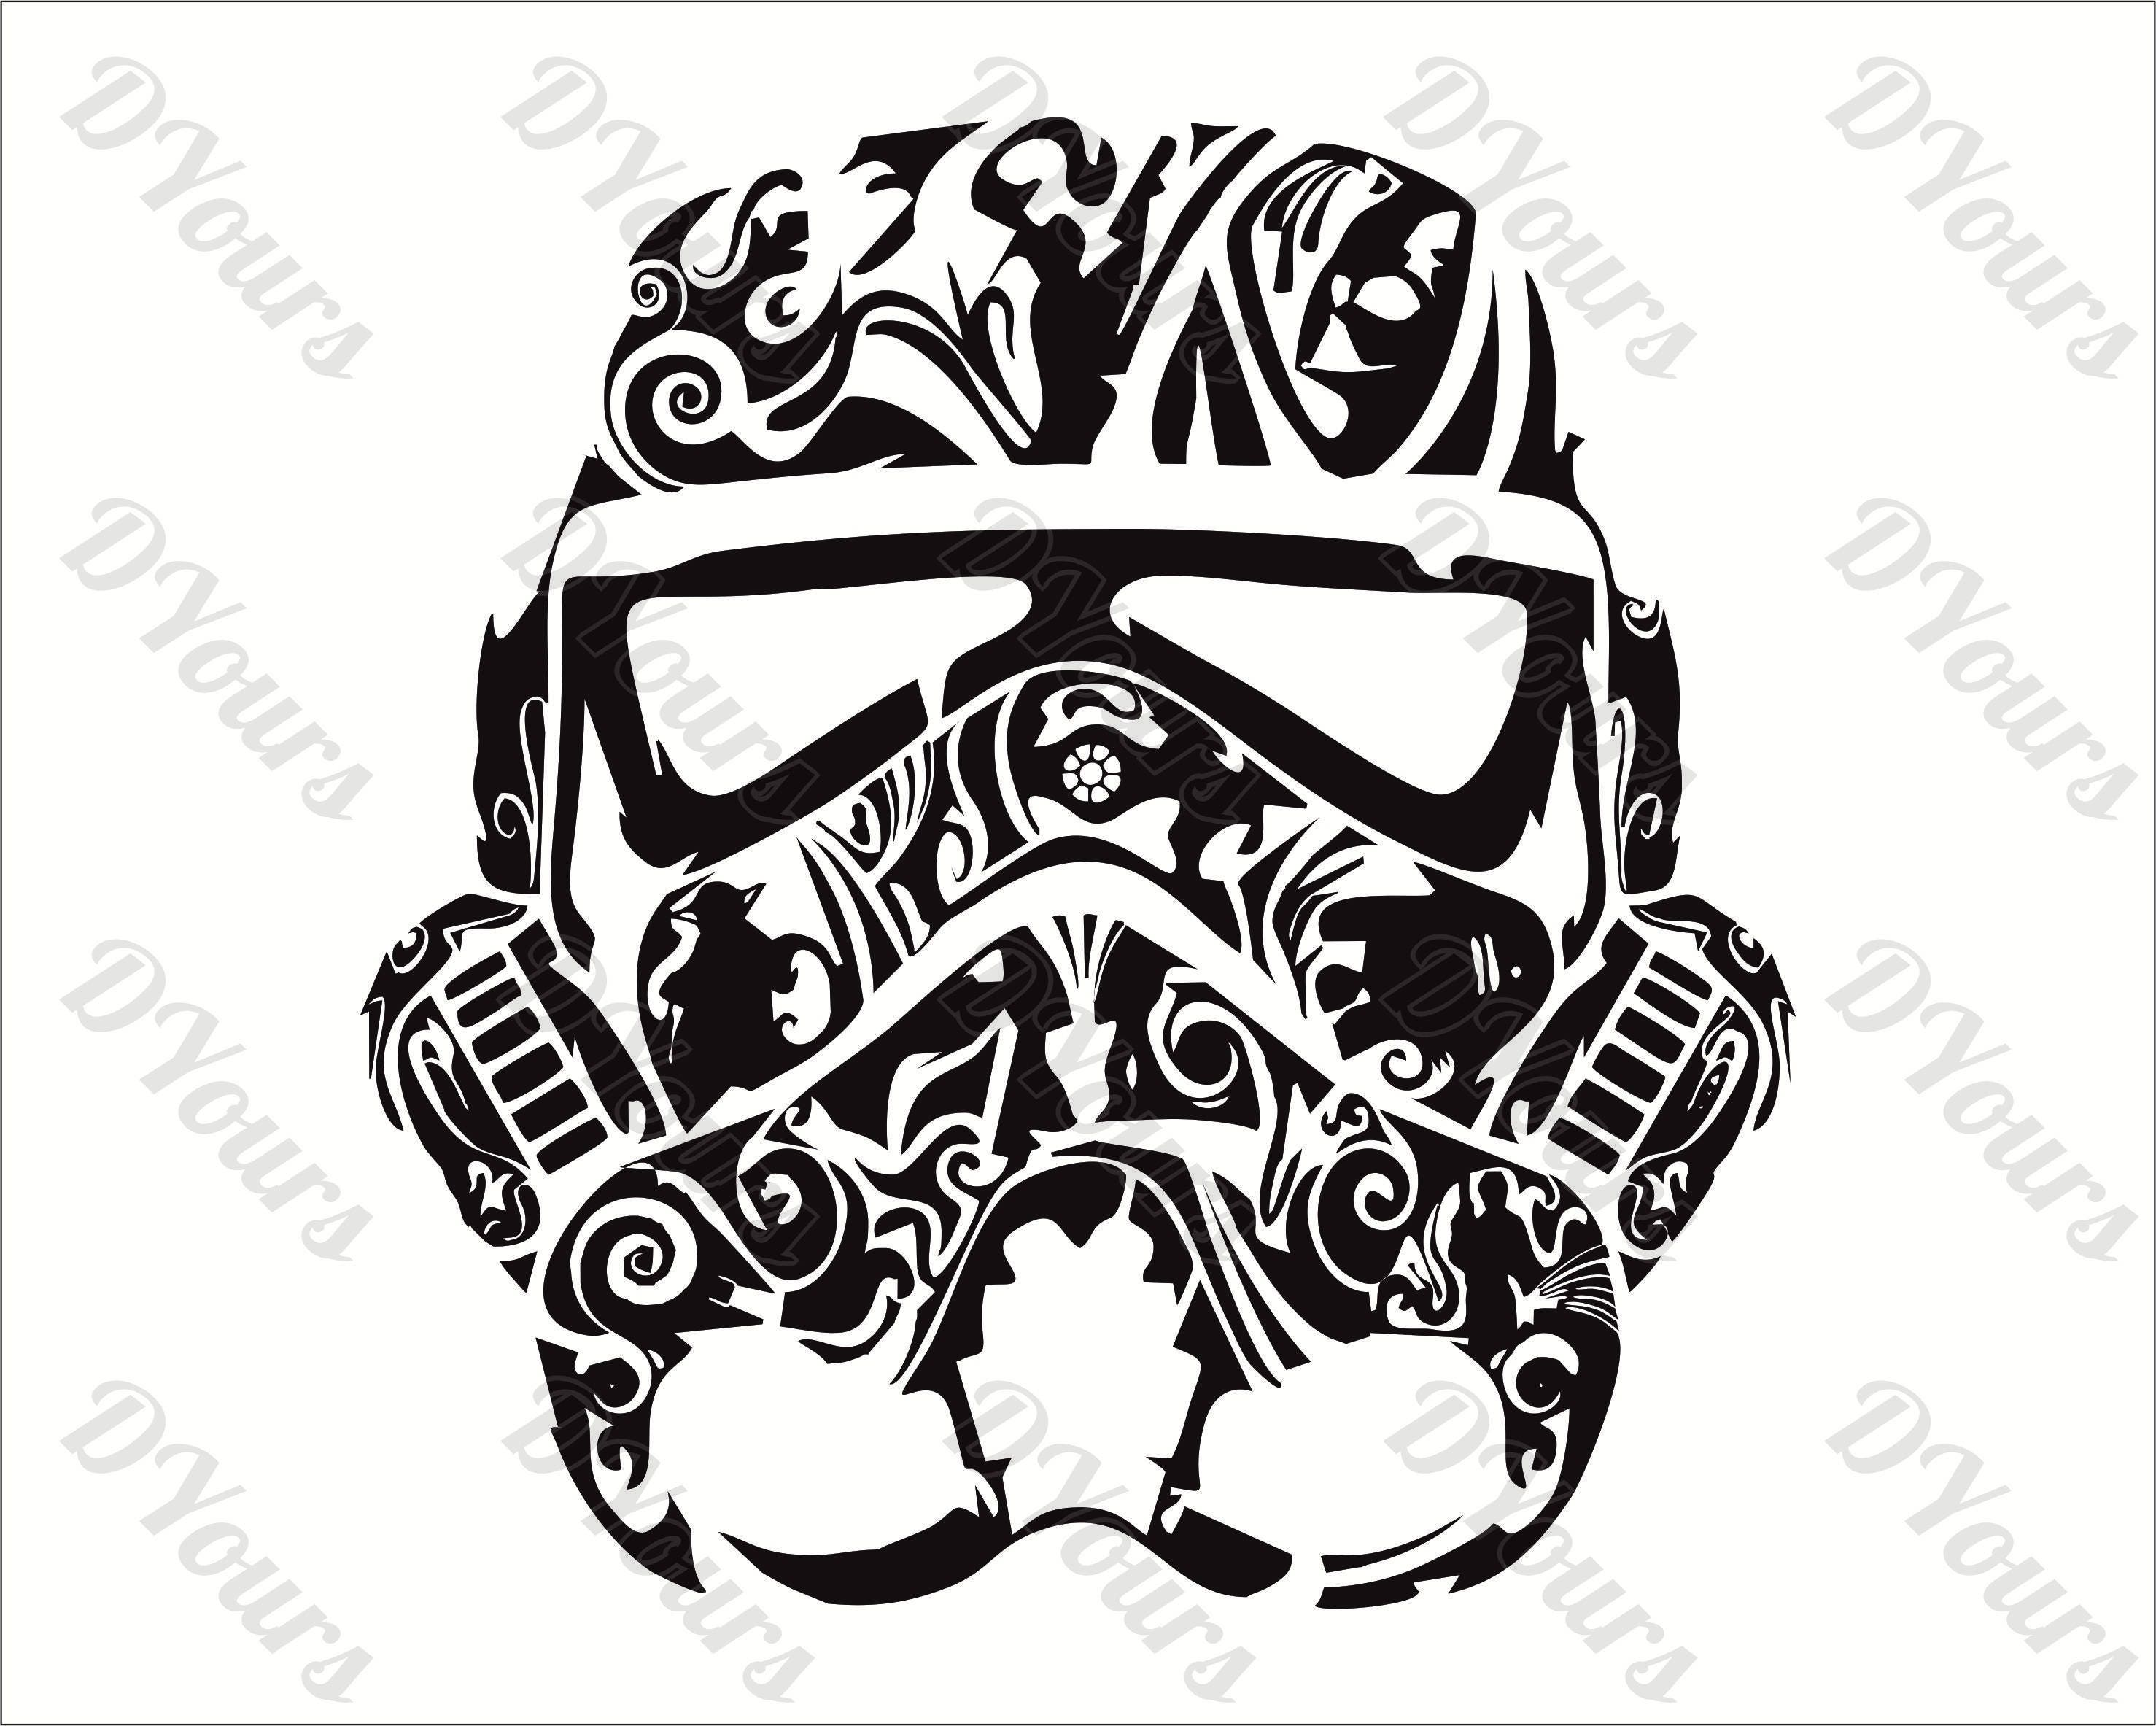 Stormtrooper Star Wars Abstract Floral Vector Model Svg